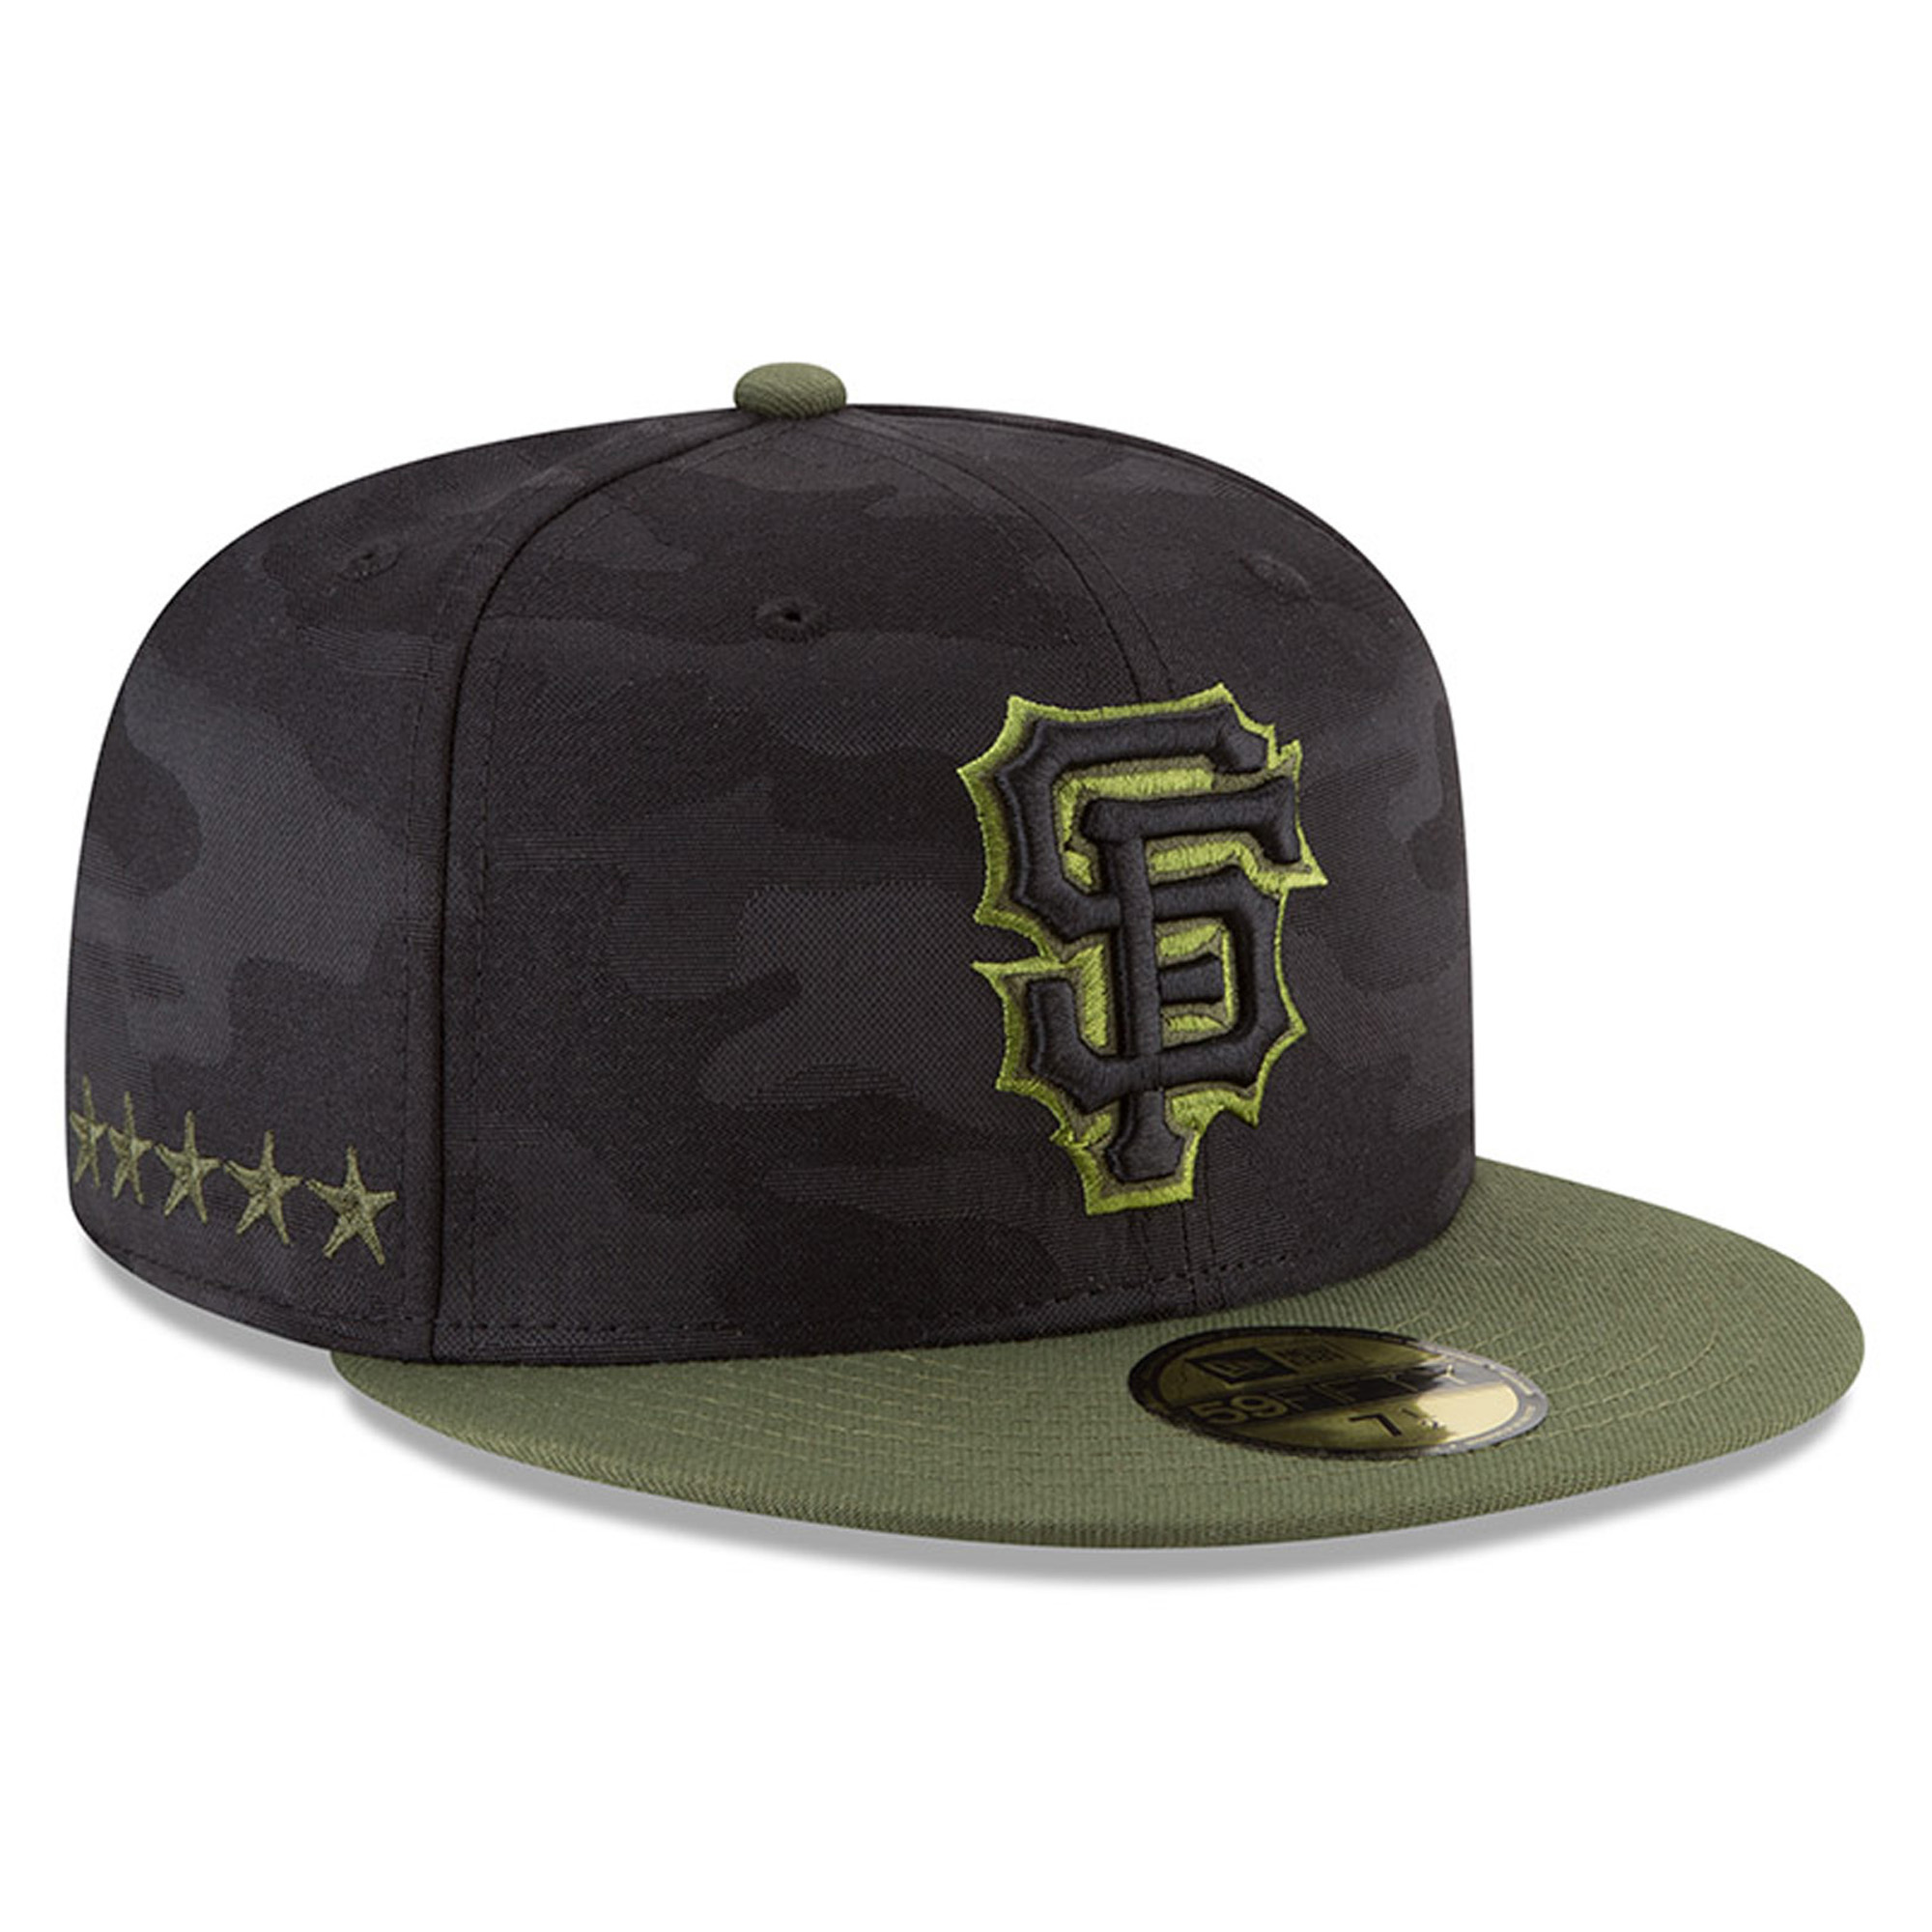 San Francisco Giants New Era 2018 Memorial Day On-Field 59FIFTY Fitted Hat - Black